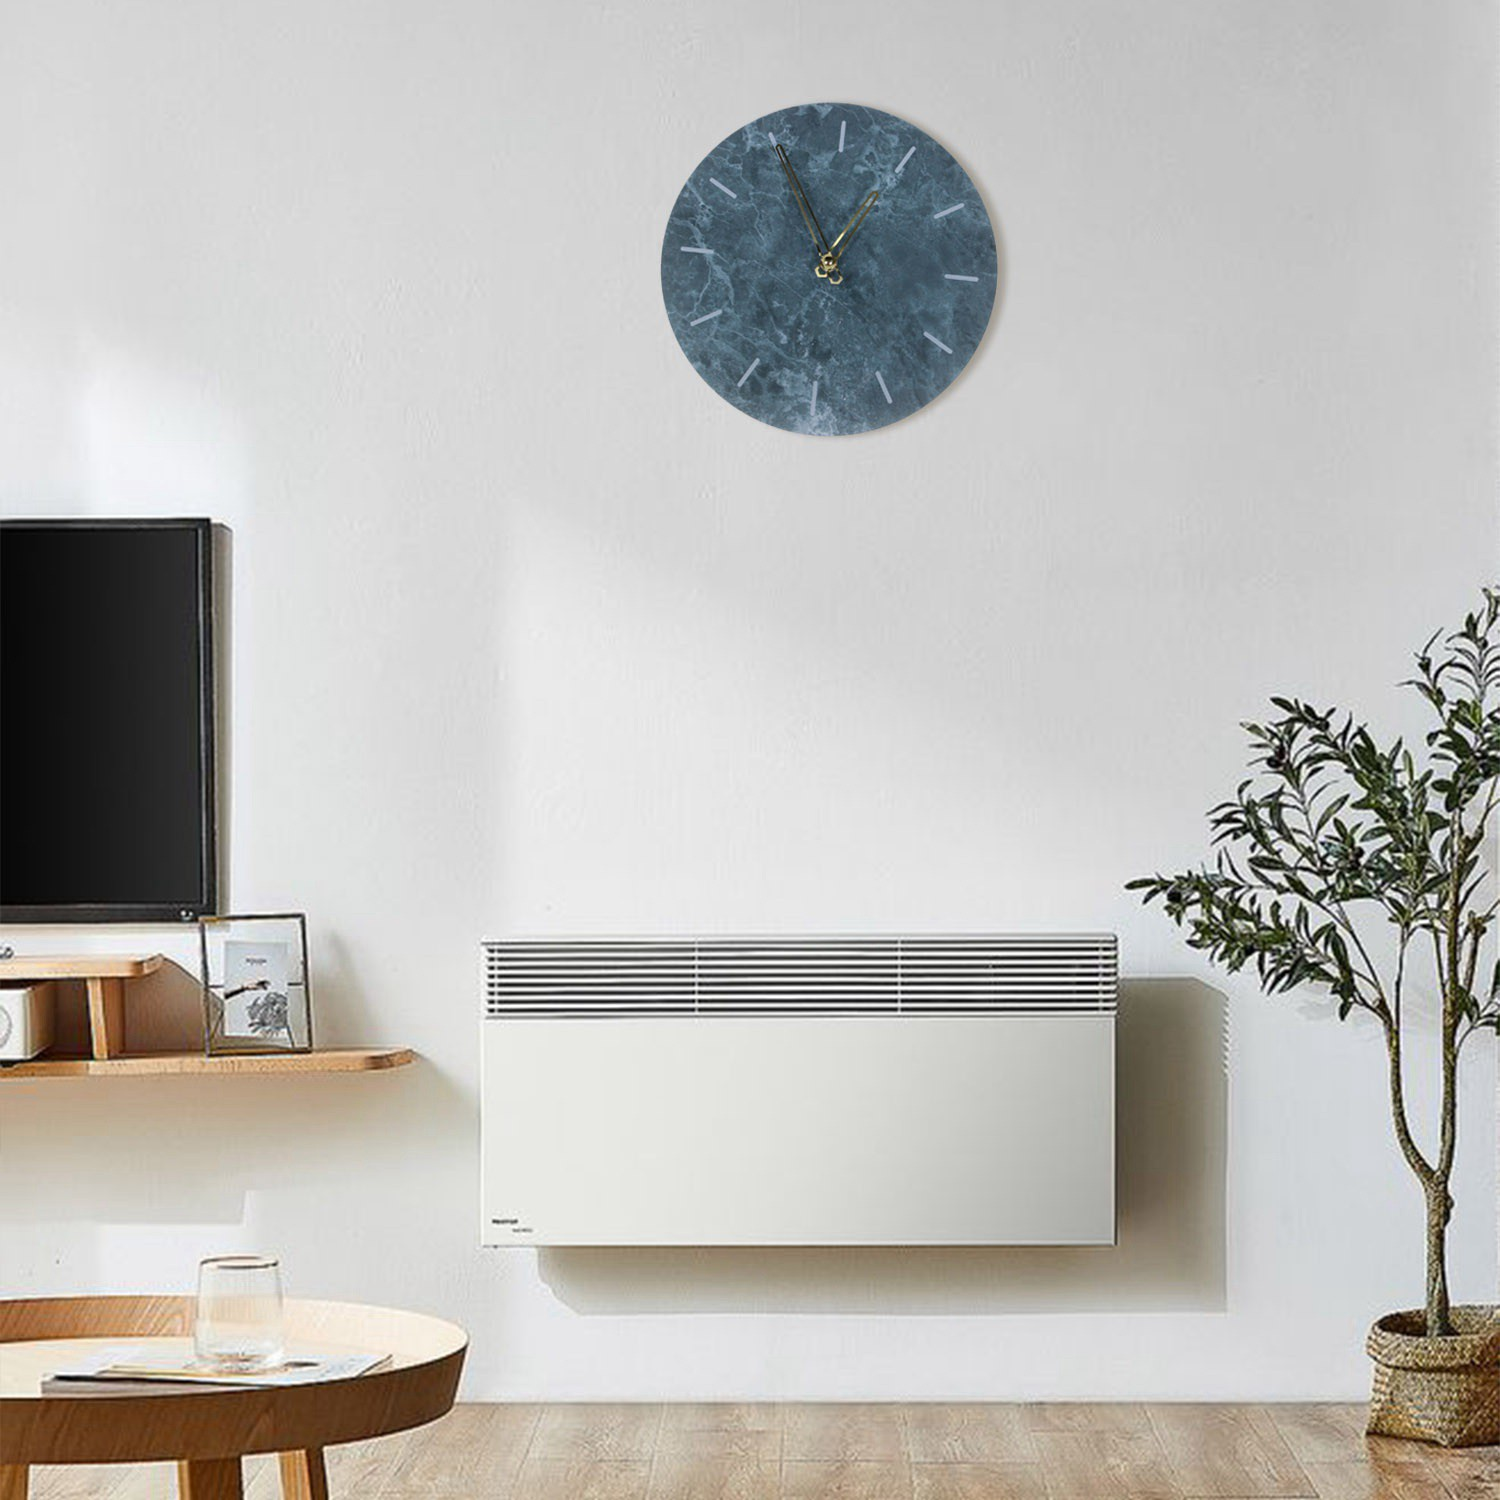 Nordic Marble Wall Clock Ern Minimalist Bedroom Art Clocks Personality Creative Living Room Fashion Wall Watch Grey Shopee Philippines